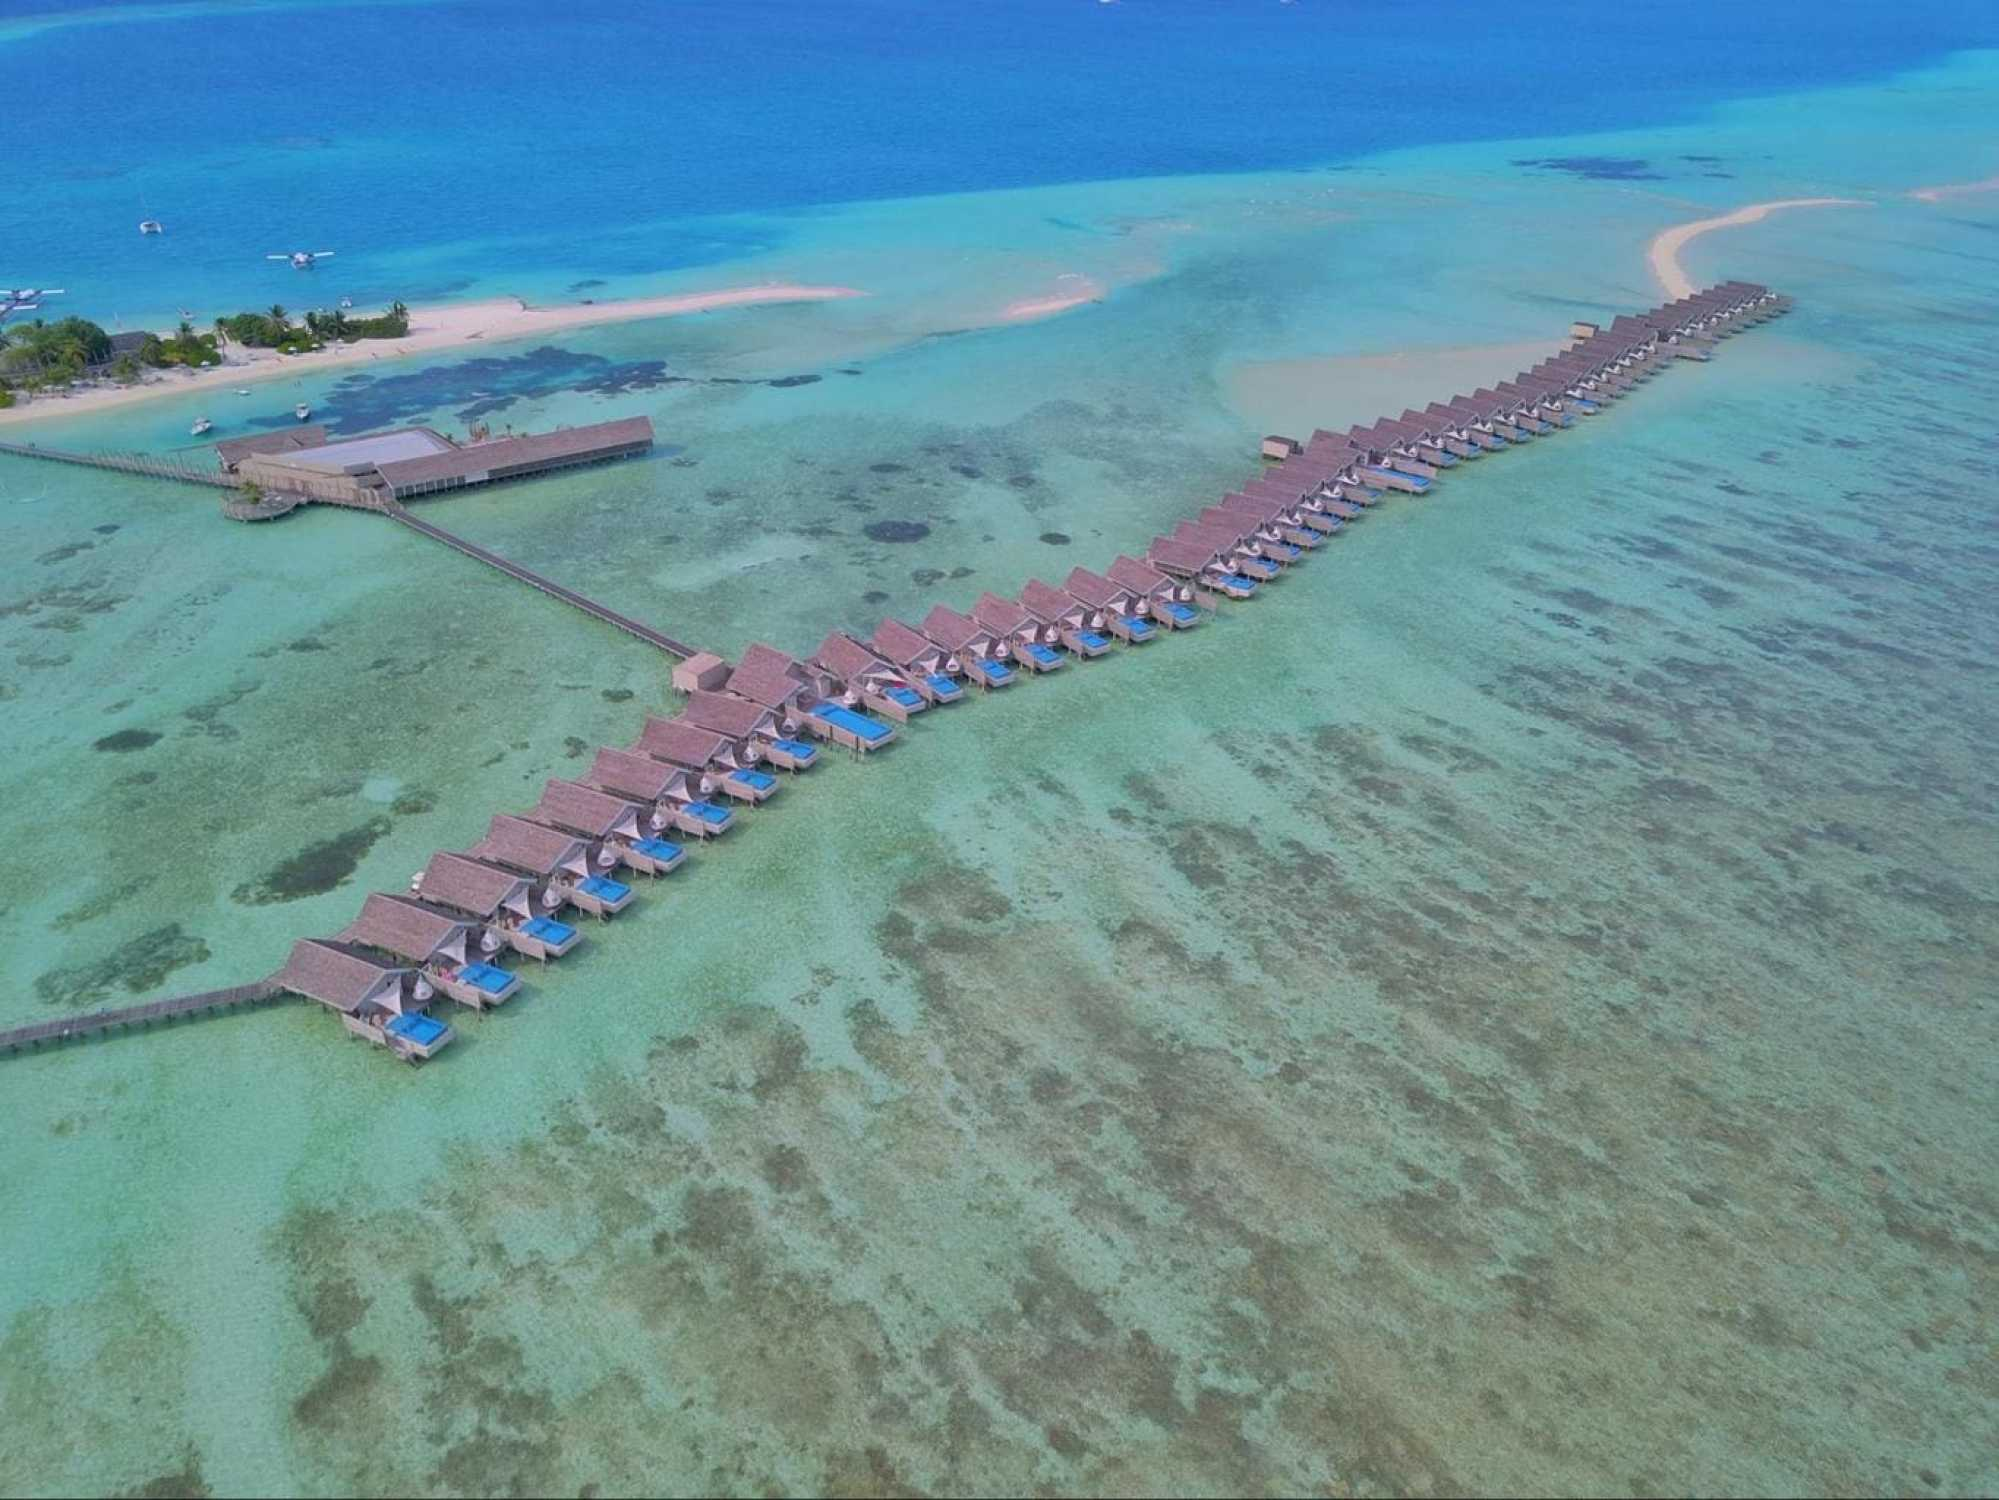 The row of Romantic pool water villas at LUX*